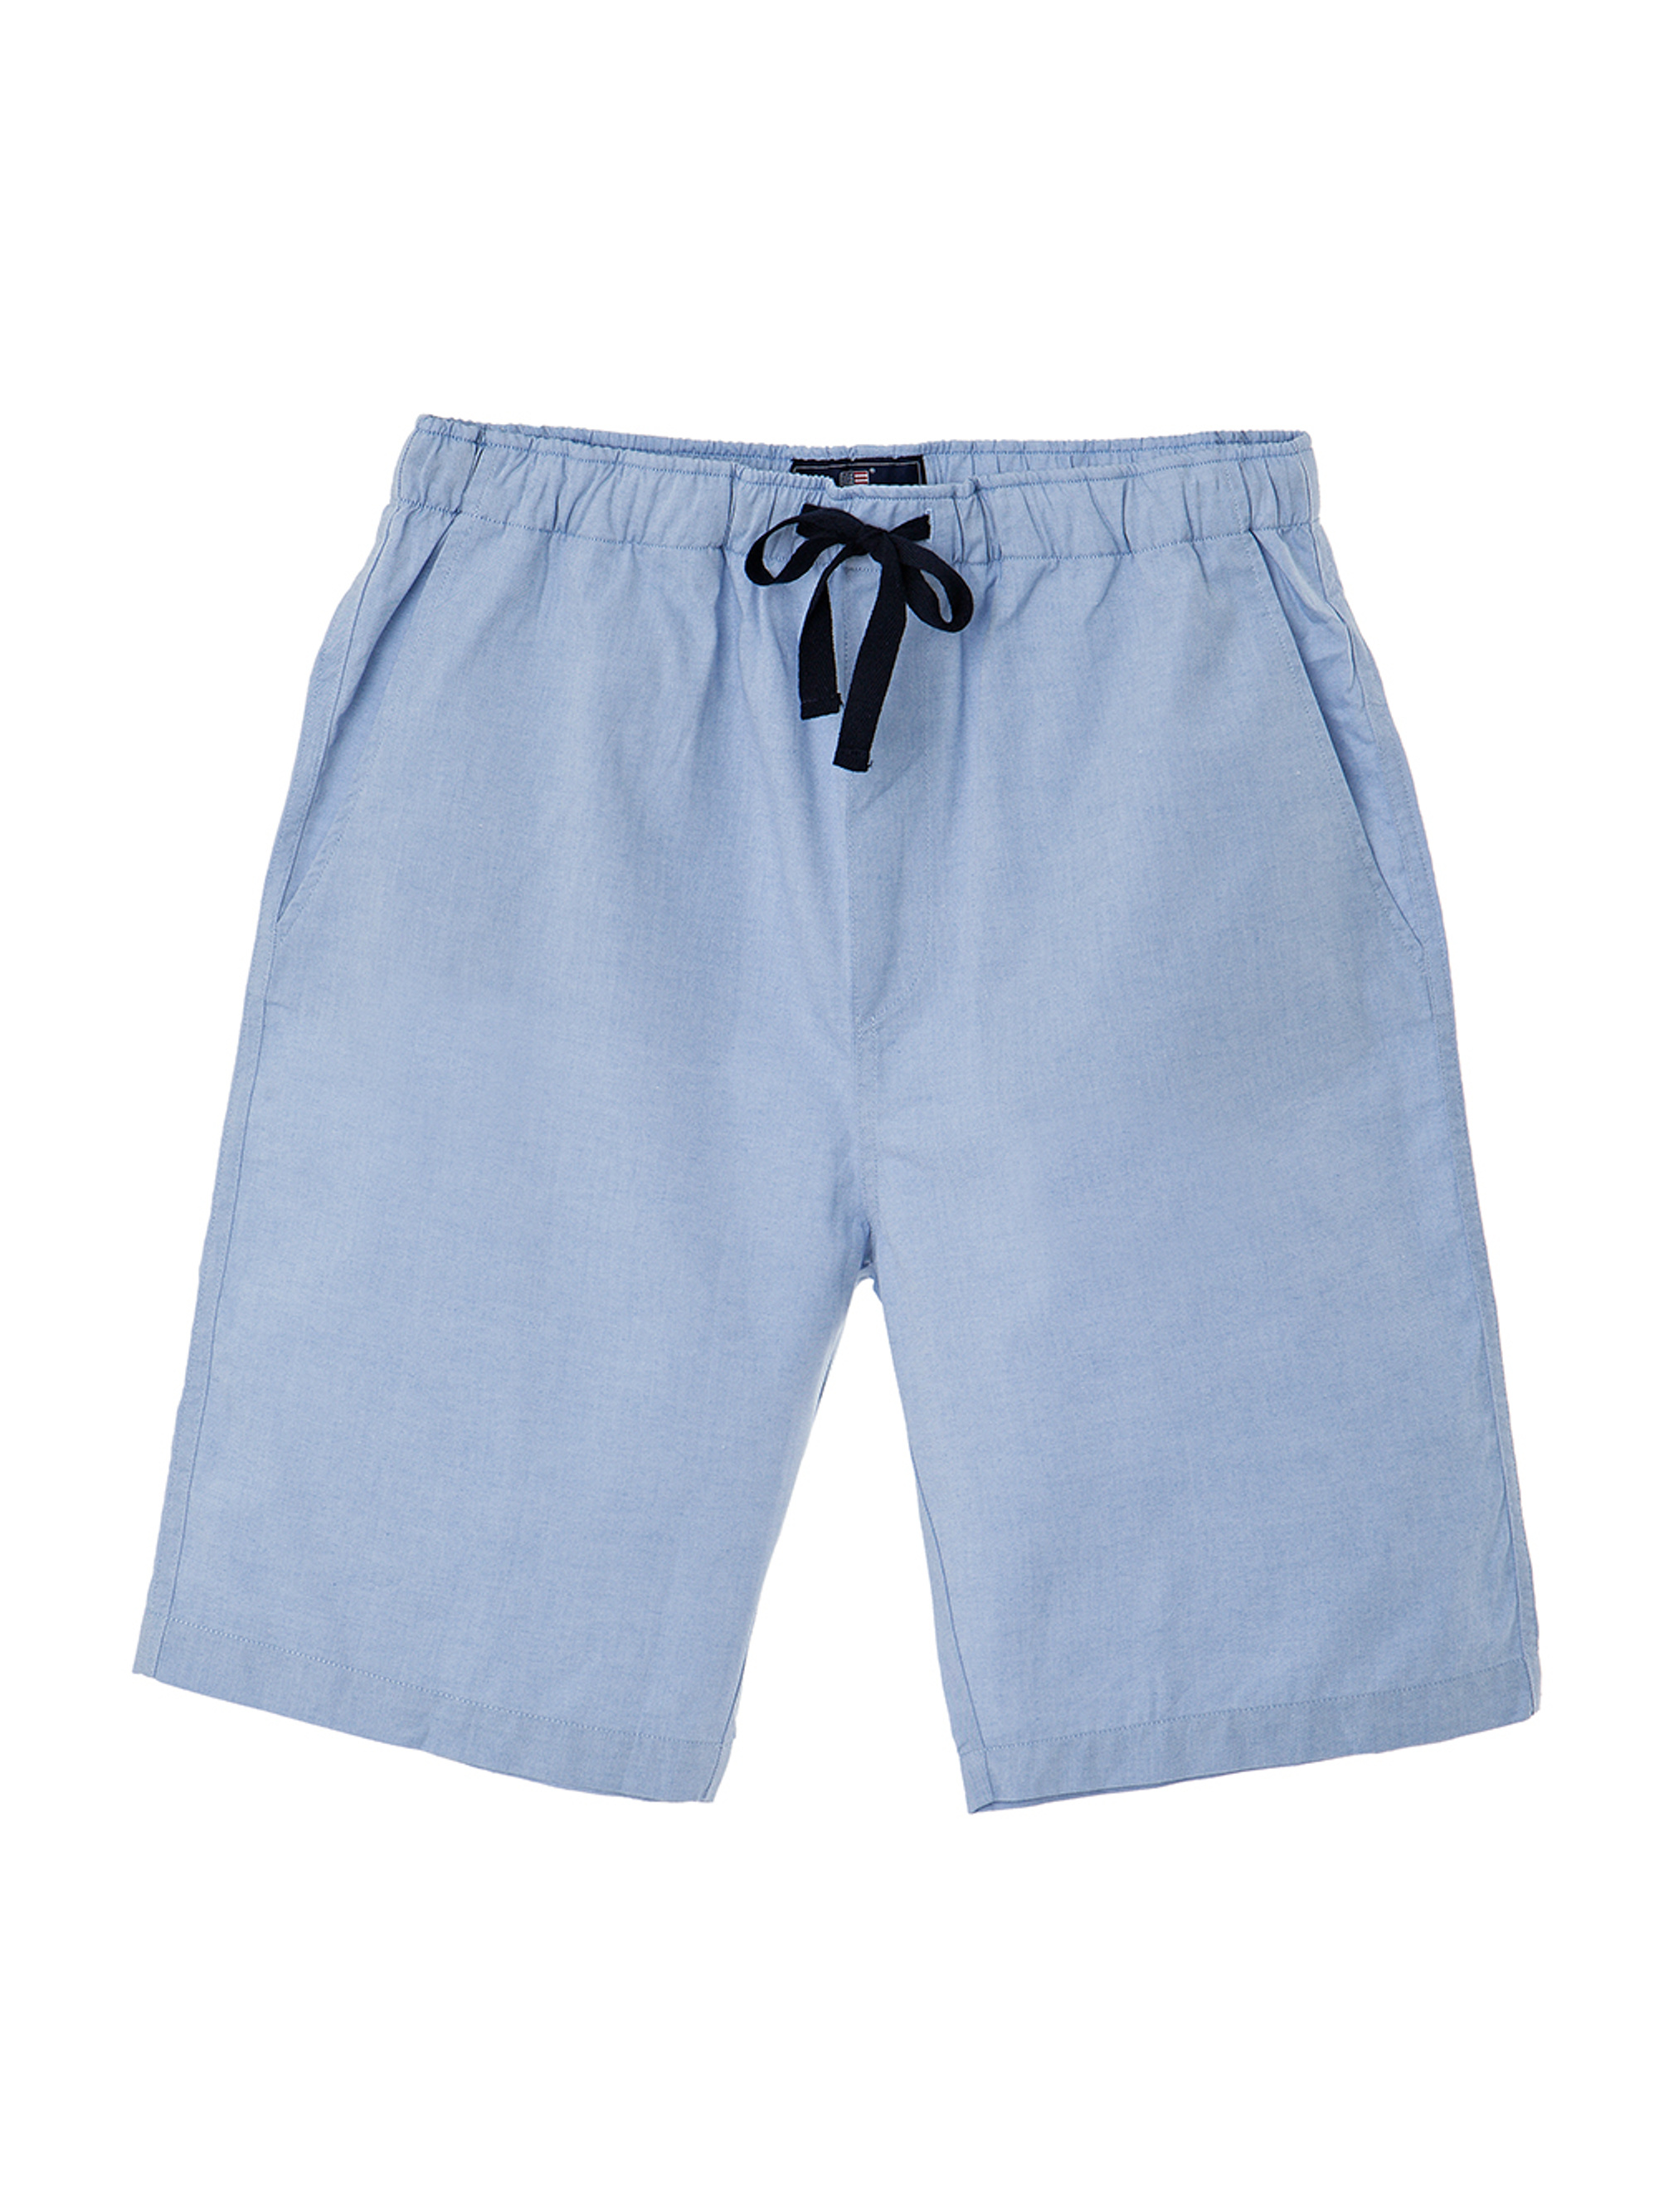 Spike Pajama, Light Blue/White